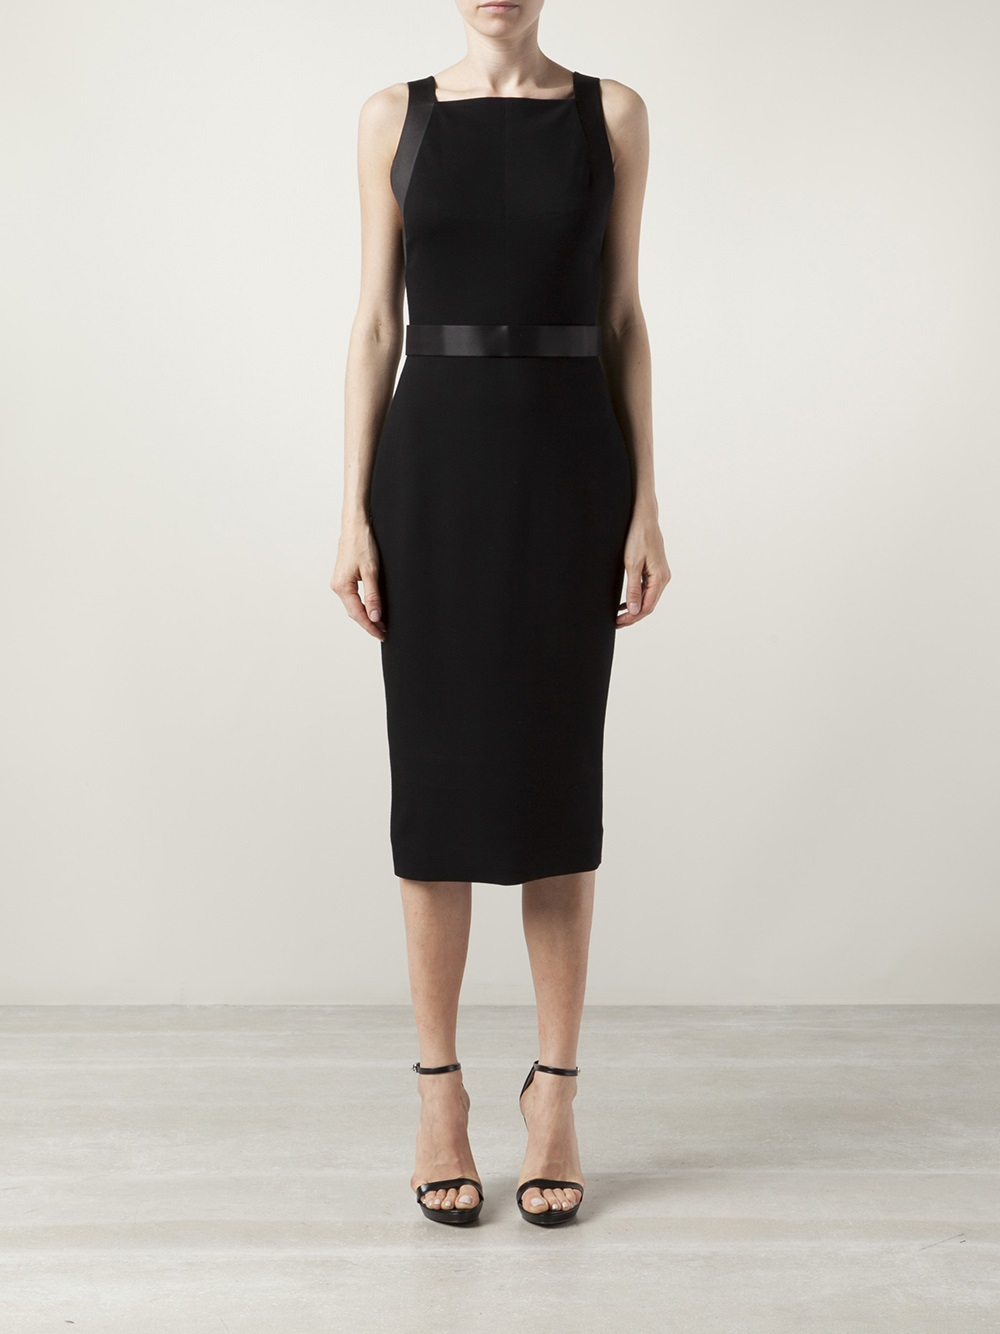 Jason wu Fitted Sheath Dress in Black | Lyst